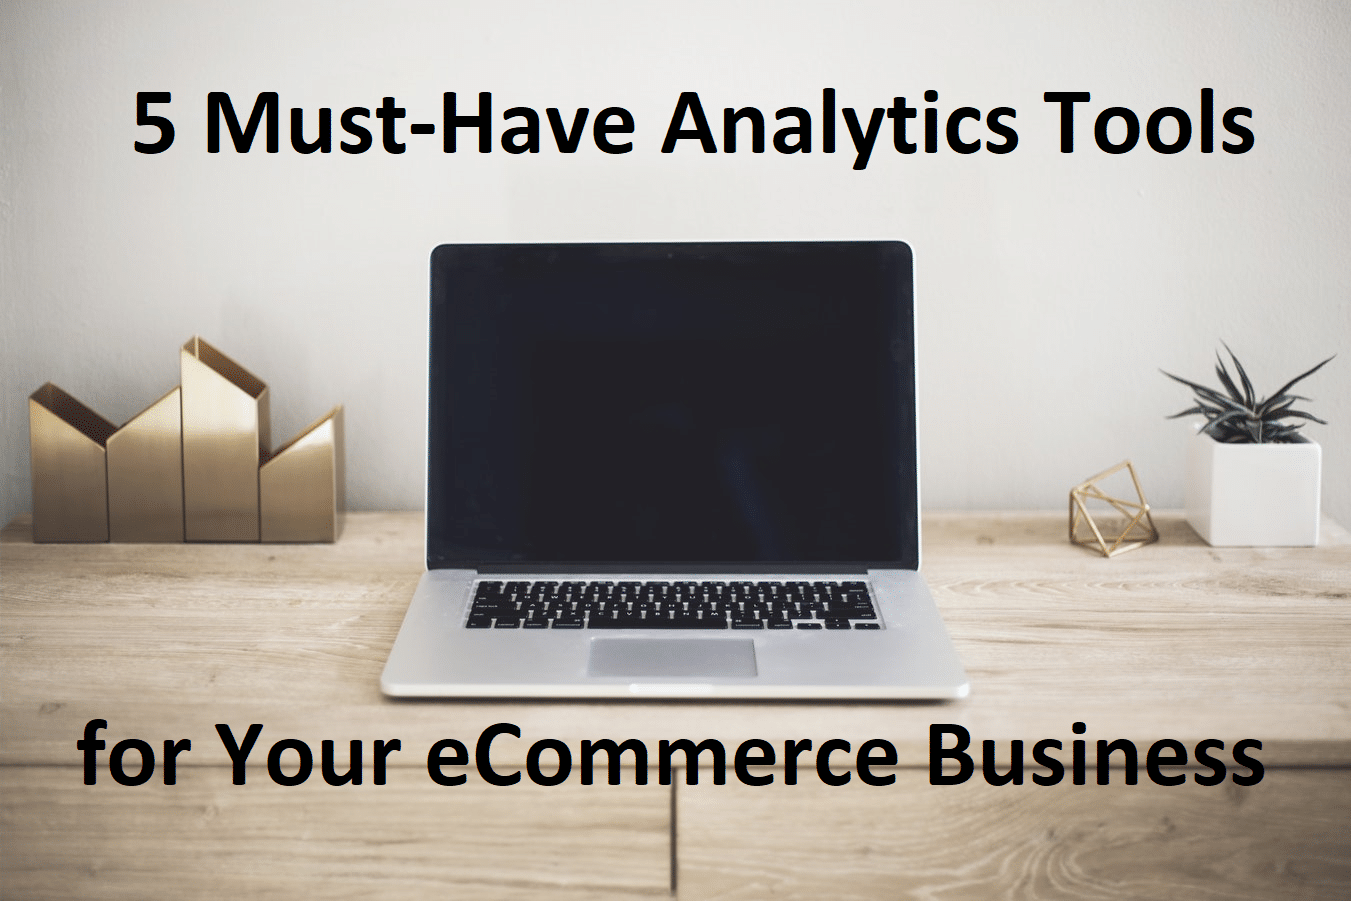 5 Must-Have Analytics Tools for Your eCommerce Business